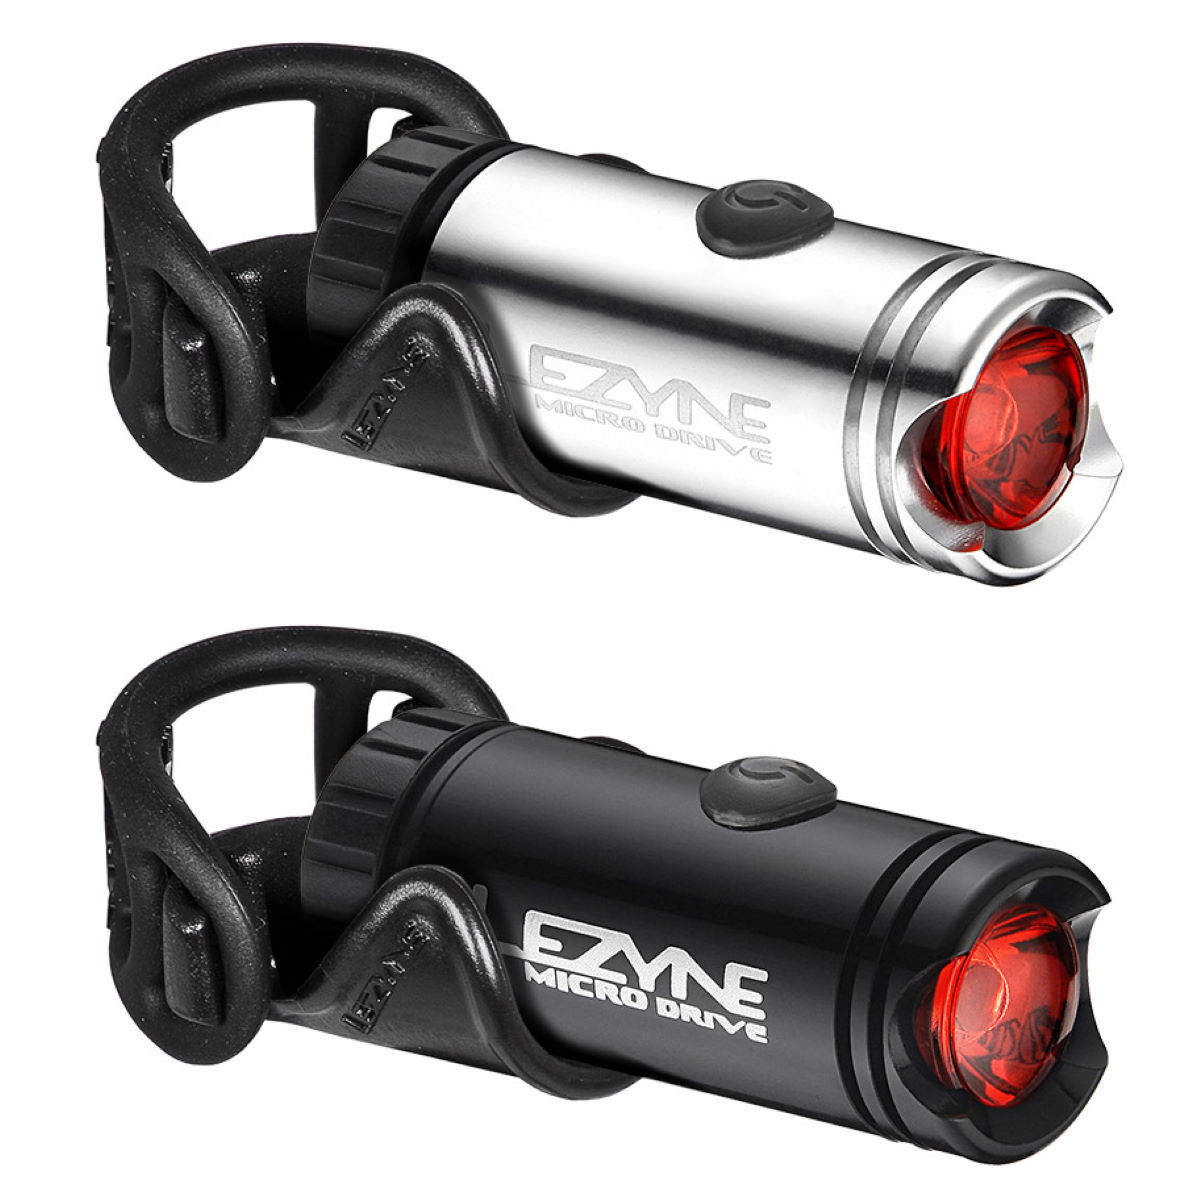 Lezyne Micro Drive LED Rear Light 2013